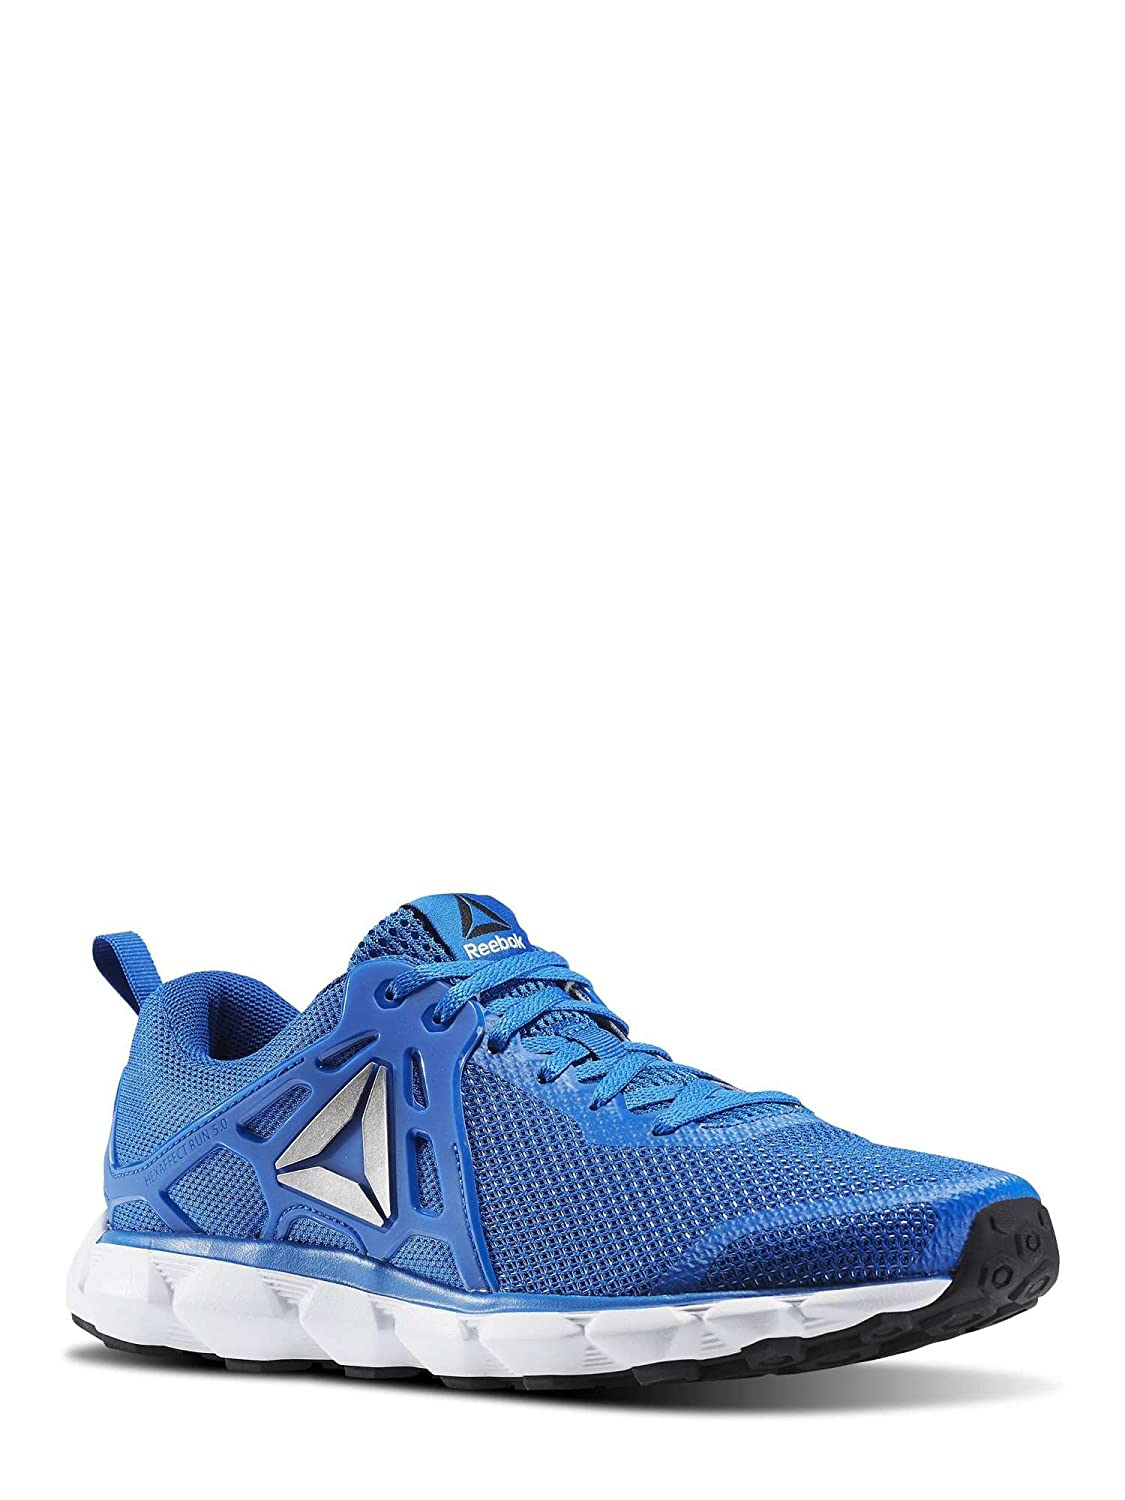 Reebok Bd2128, Zapatillas de Trail Running para Hombre 45 EU|Azul (Awesome Blue / Pewter / White / Black)